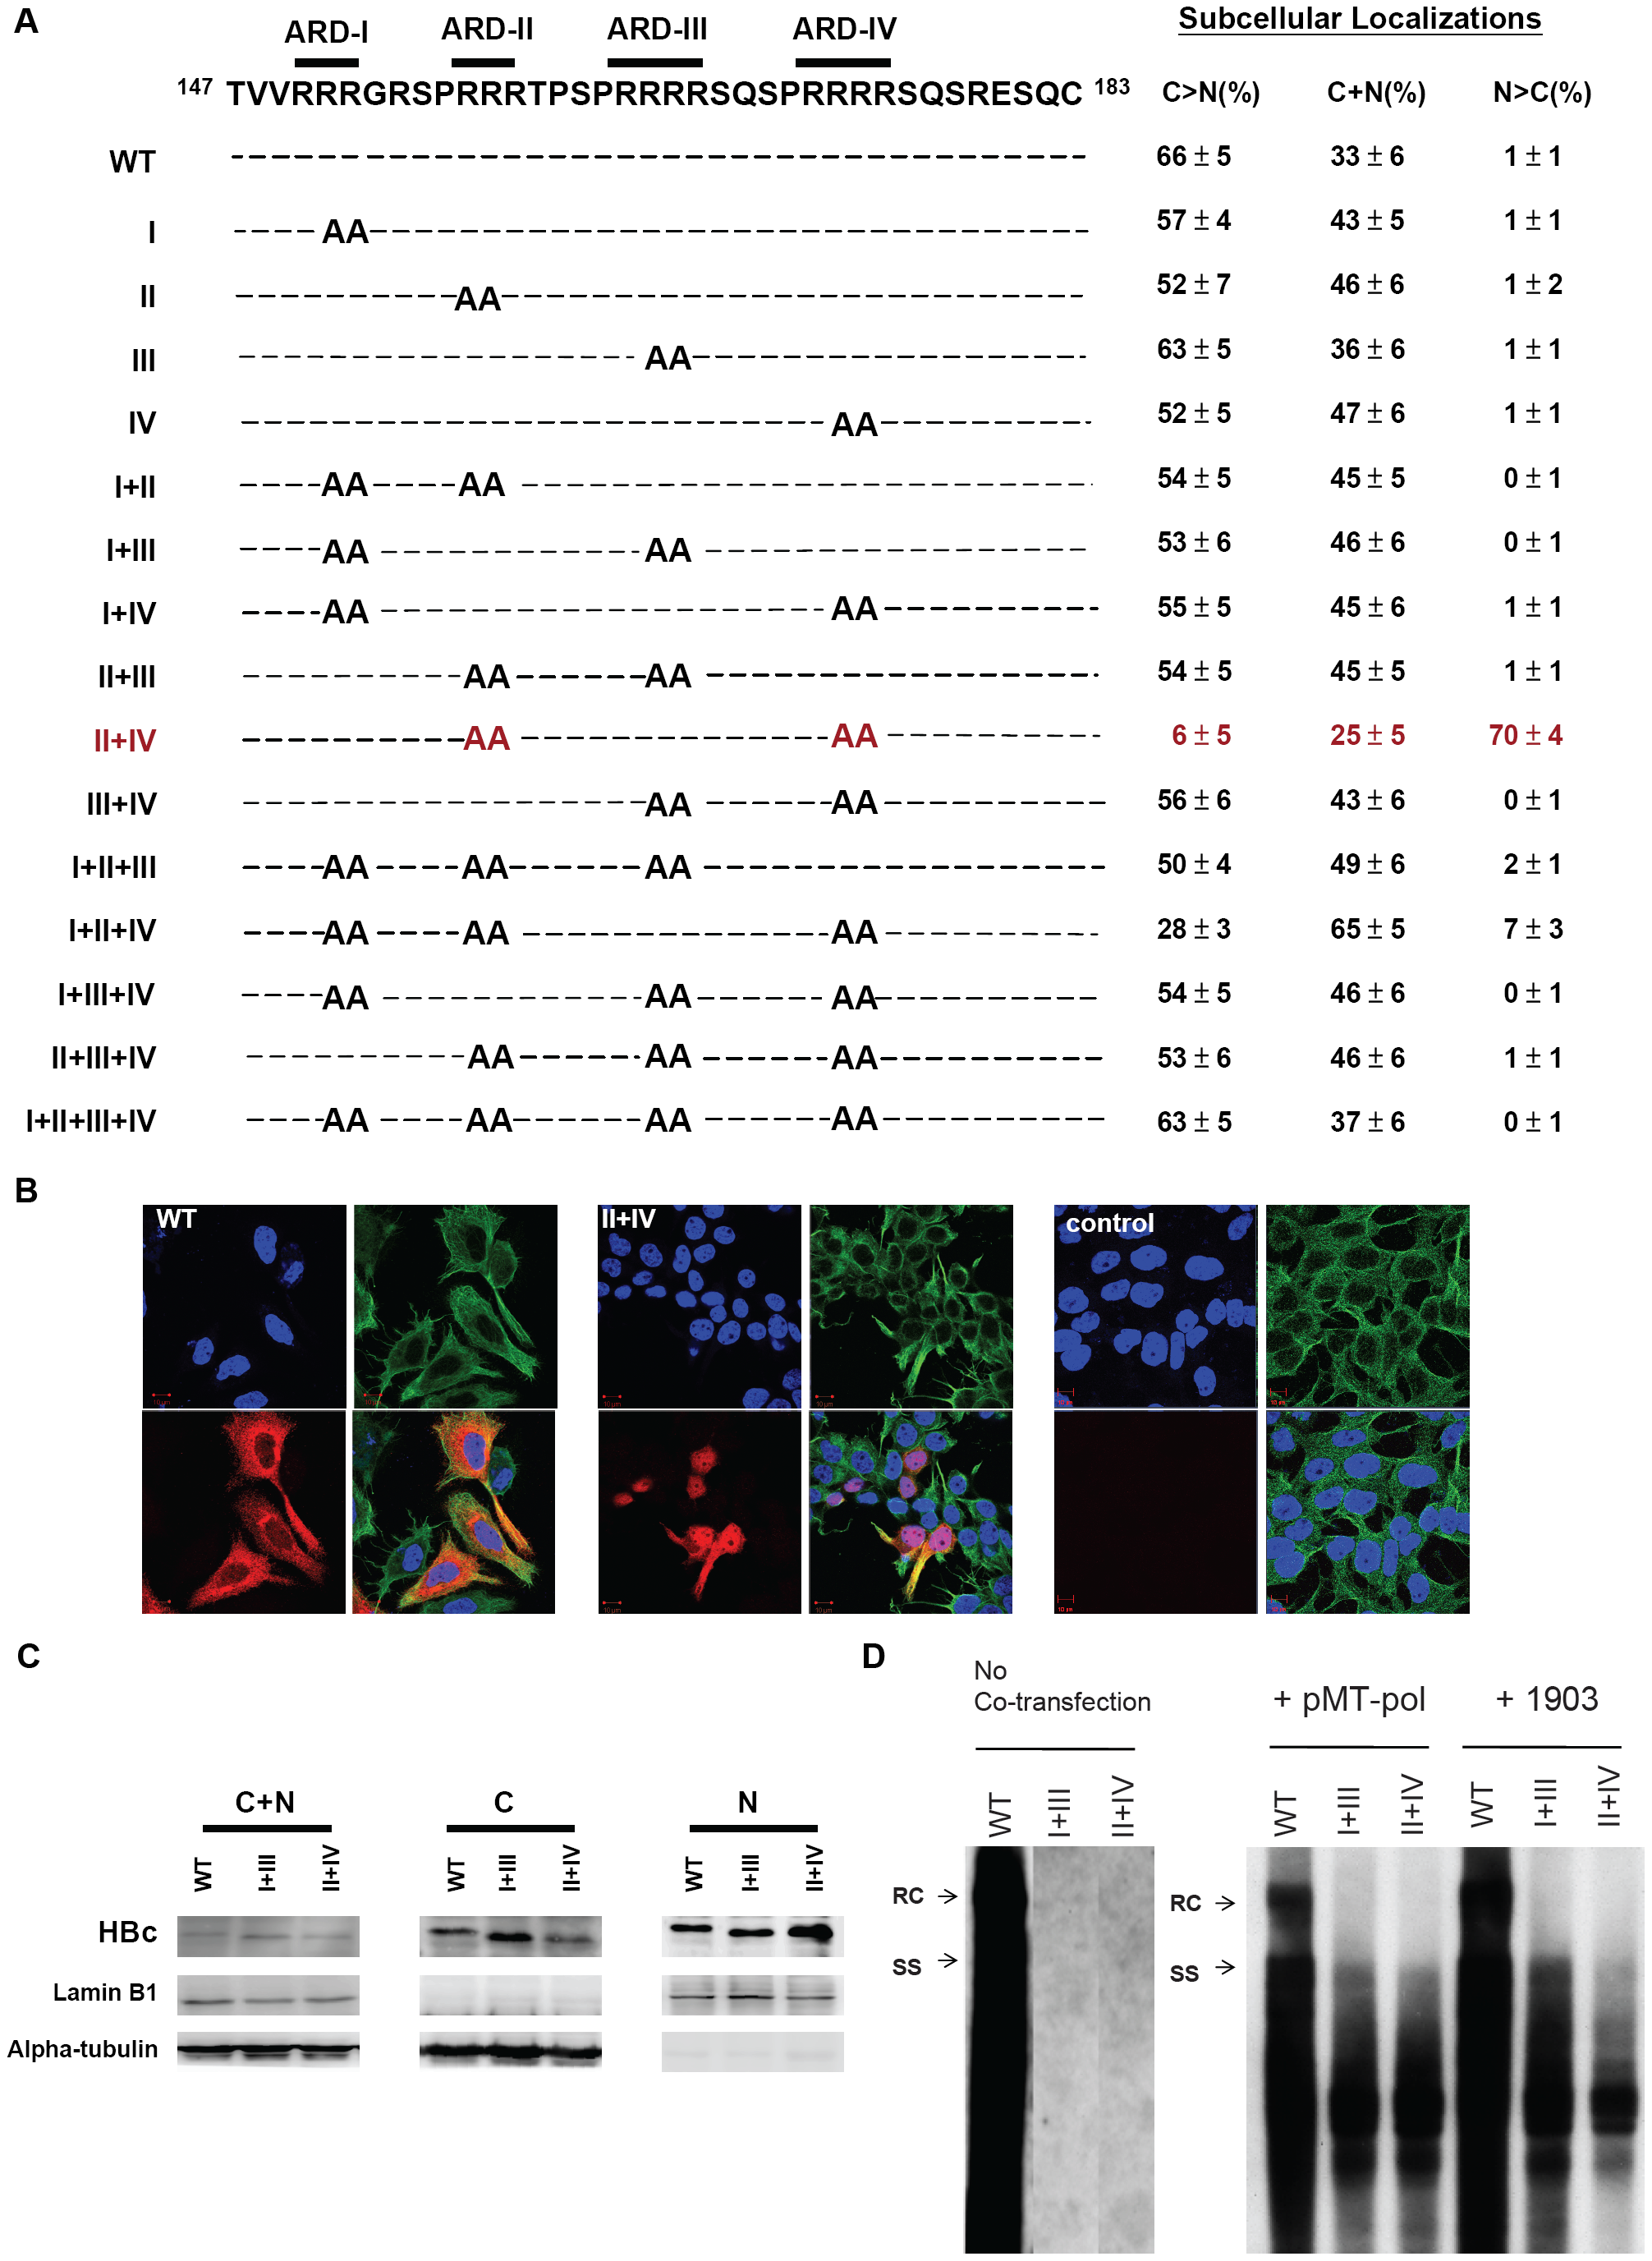 Subcellular localization of HBc of 15 HBc ARD mutants was evaluated by immunofluorescence assay (IFA) of Huh7 cells, which had been cotransfected with HBc ARD mutants and plasmid pMT-pol expressing HBV polymerase, using a double-blind protocol.